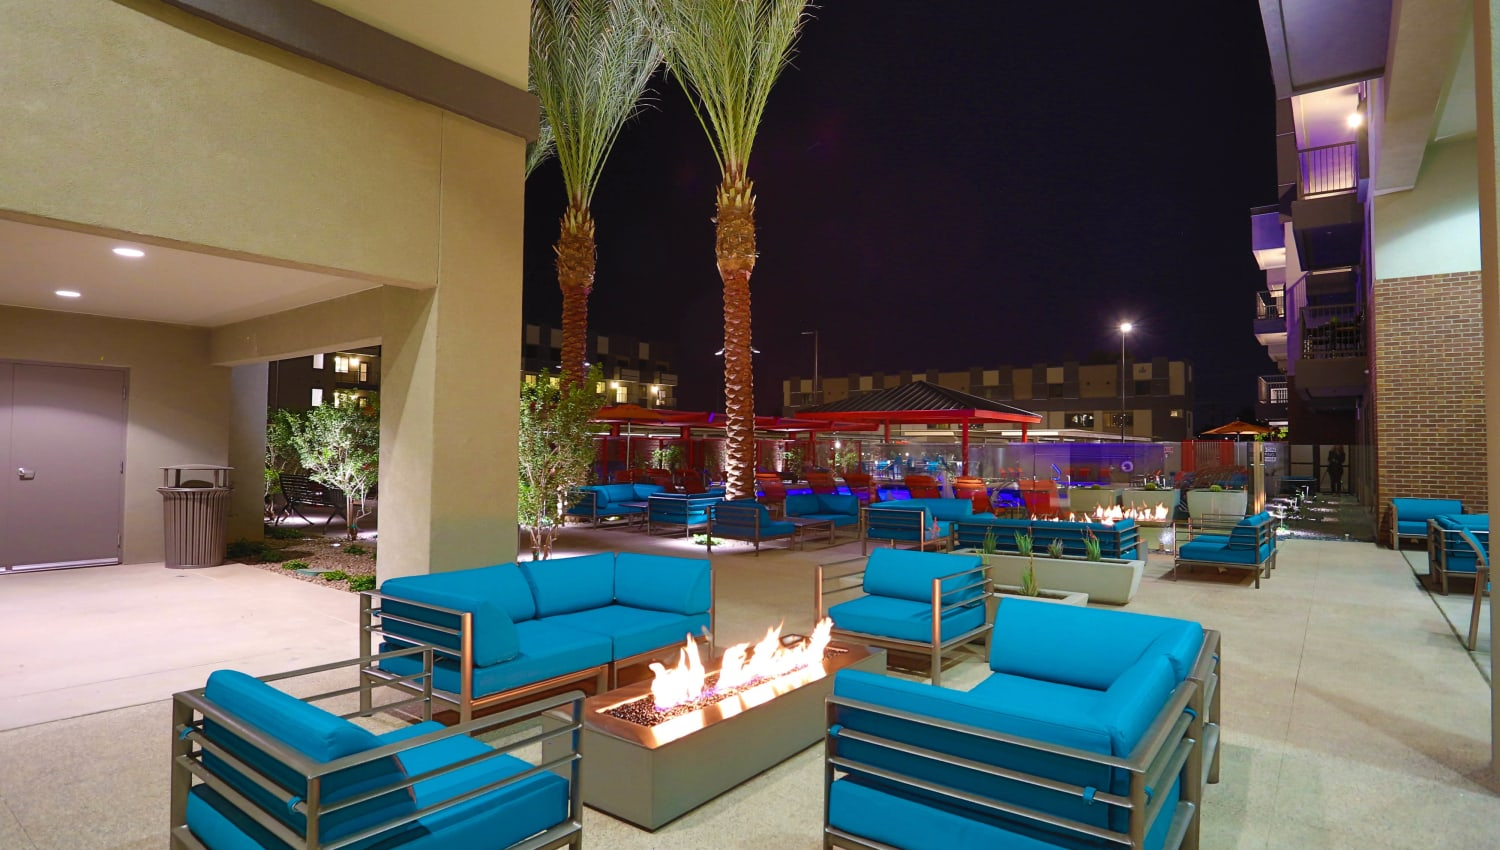 Fire pit lounge area at Olympus Steelyard in Chandler, Arizona